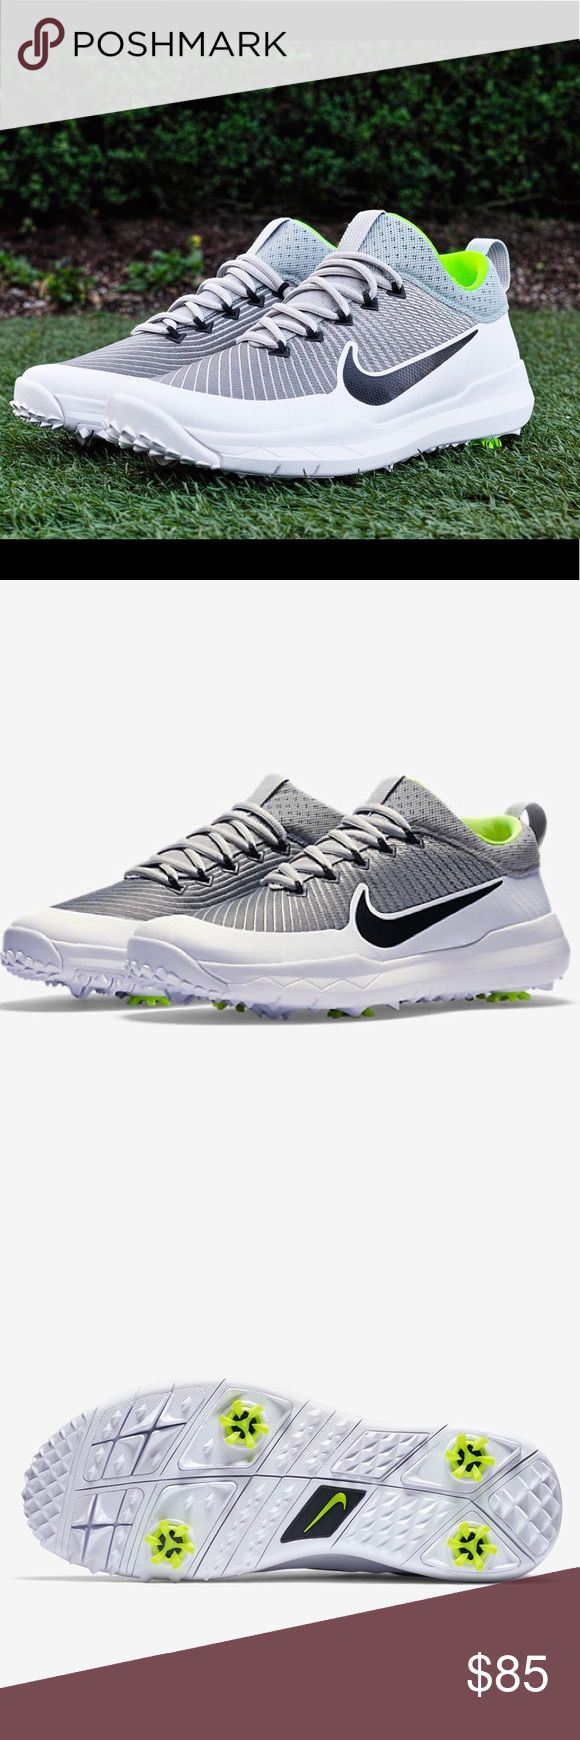 NWT Nike FI Premiere Mens Golf Shoes Please make offers! Men size 9 Gray and White Original price $200 Brand new never worn! ***Sizes 8, 10, 10.5, 11.5 Available in Black/Turquoise*** ***See other listings*** Nike Shoes Athletic Shoes